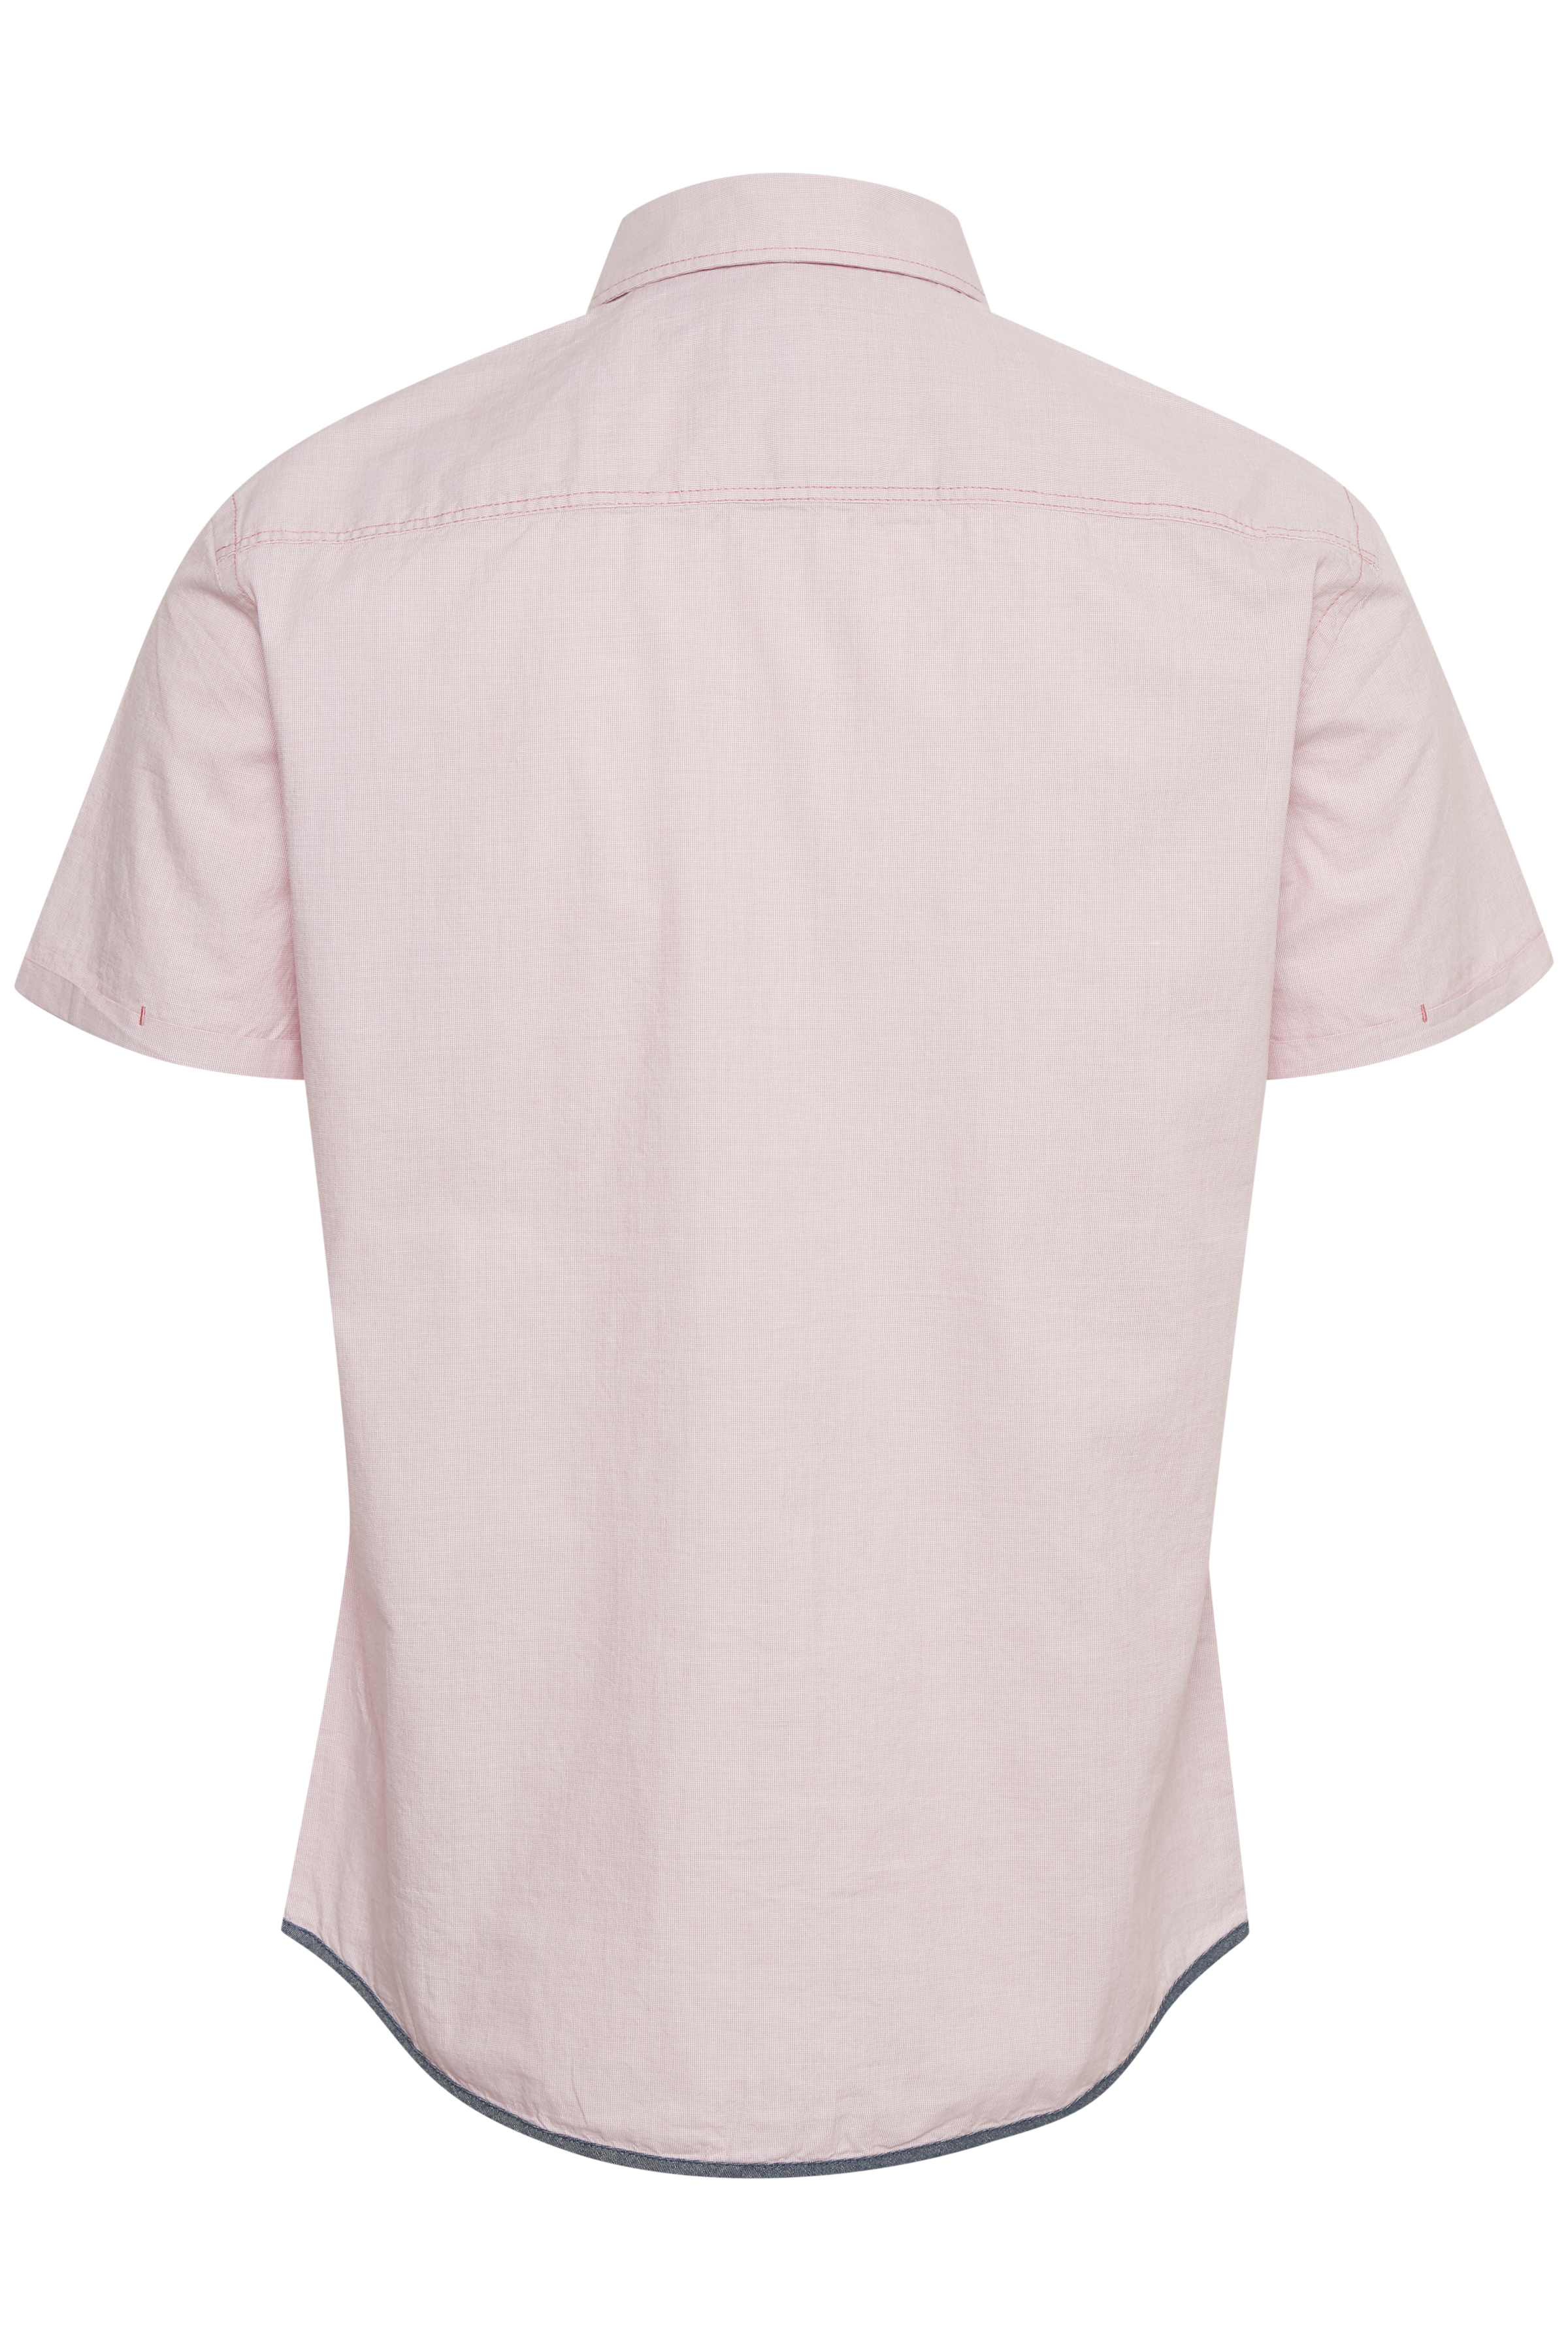 Dusty Rose Red Skjorte – Køb Dusty Rose Red Skjorte fra str. S-XXL her